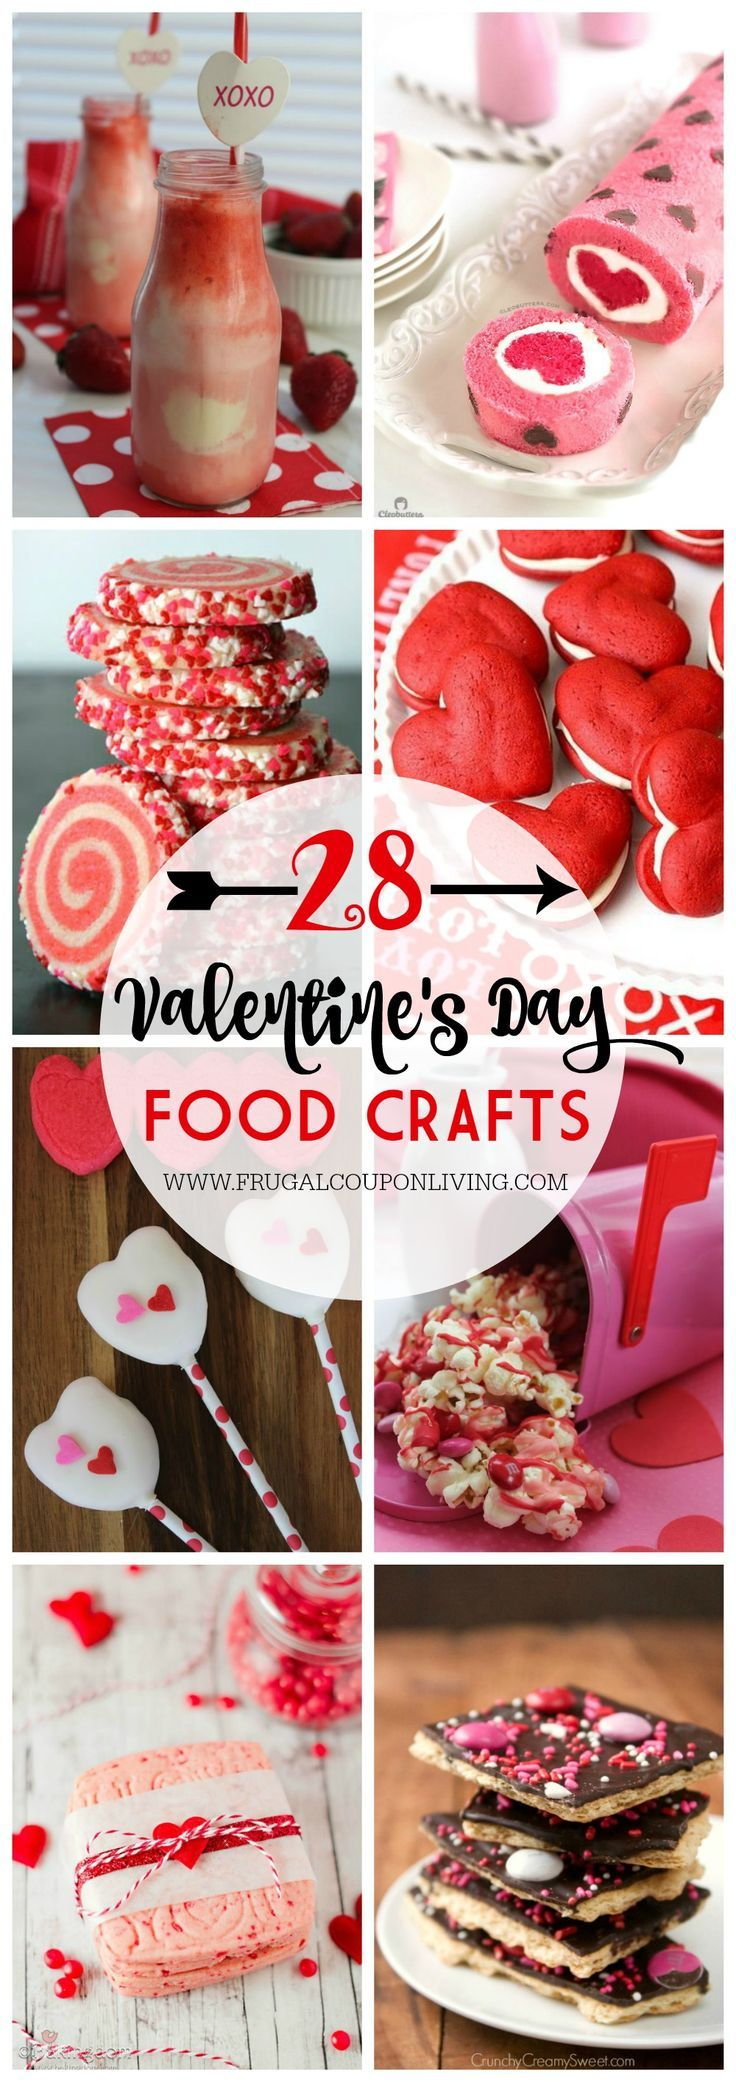 25+ best Valentine's day ideas on Pinterest | Saint valentine ...